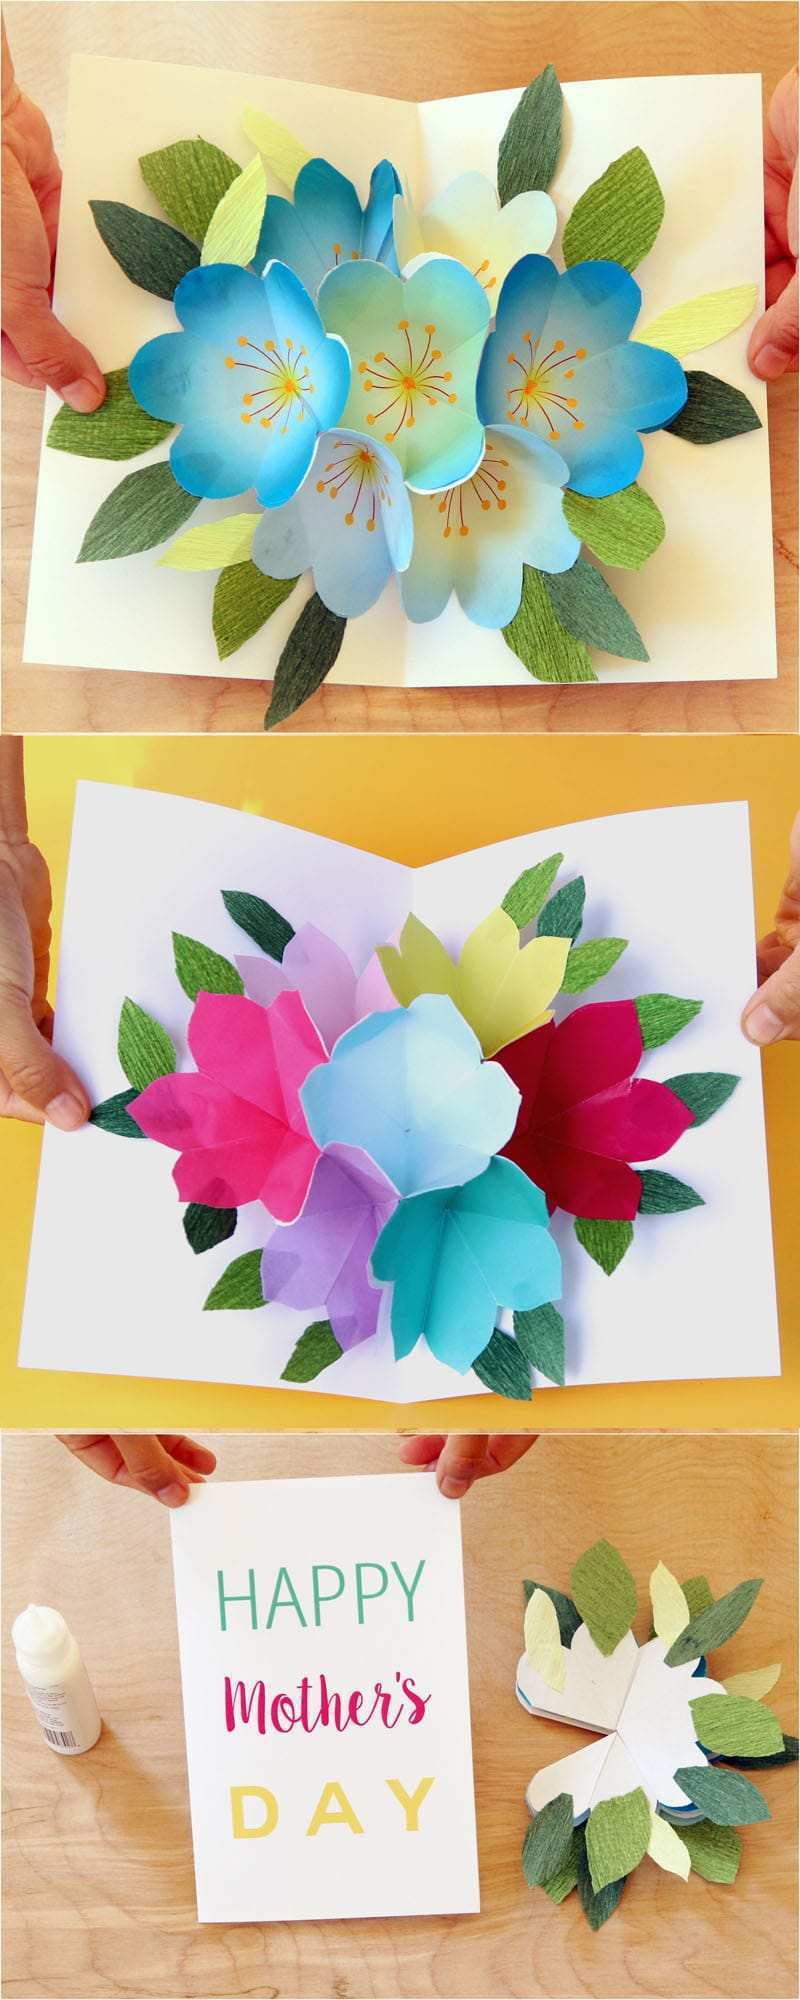 44 Creating Mothers Card Templates Youtube Layouts by Mothers Card Templates Youtube